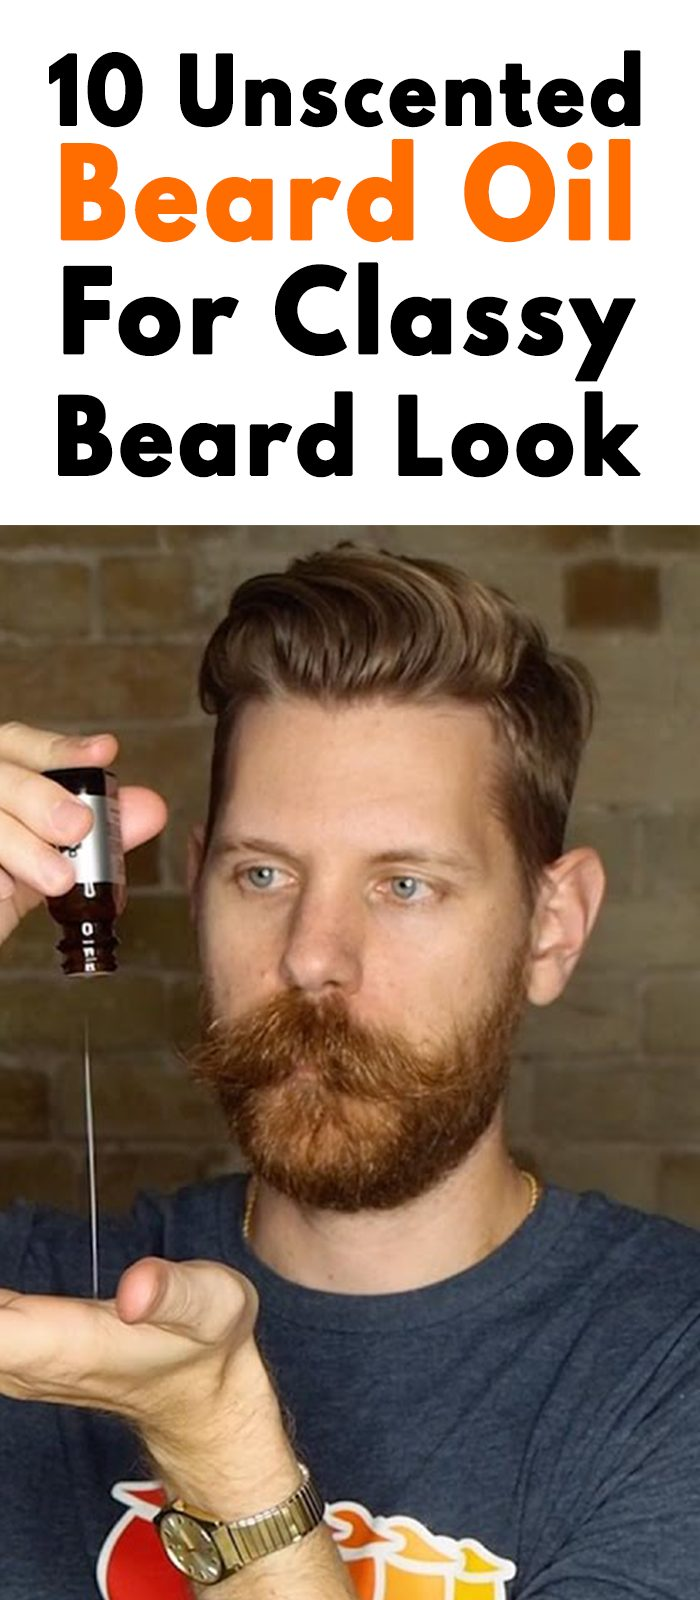 10 Unscented Beard Oil For Classy Beard Look!